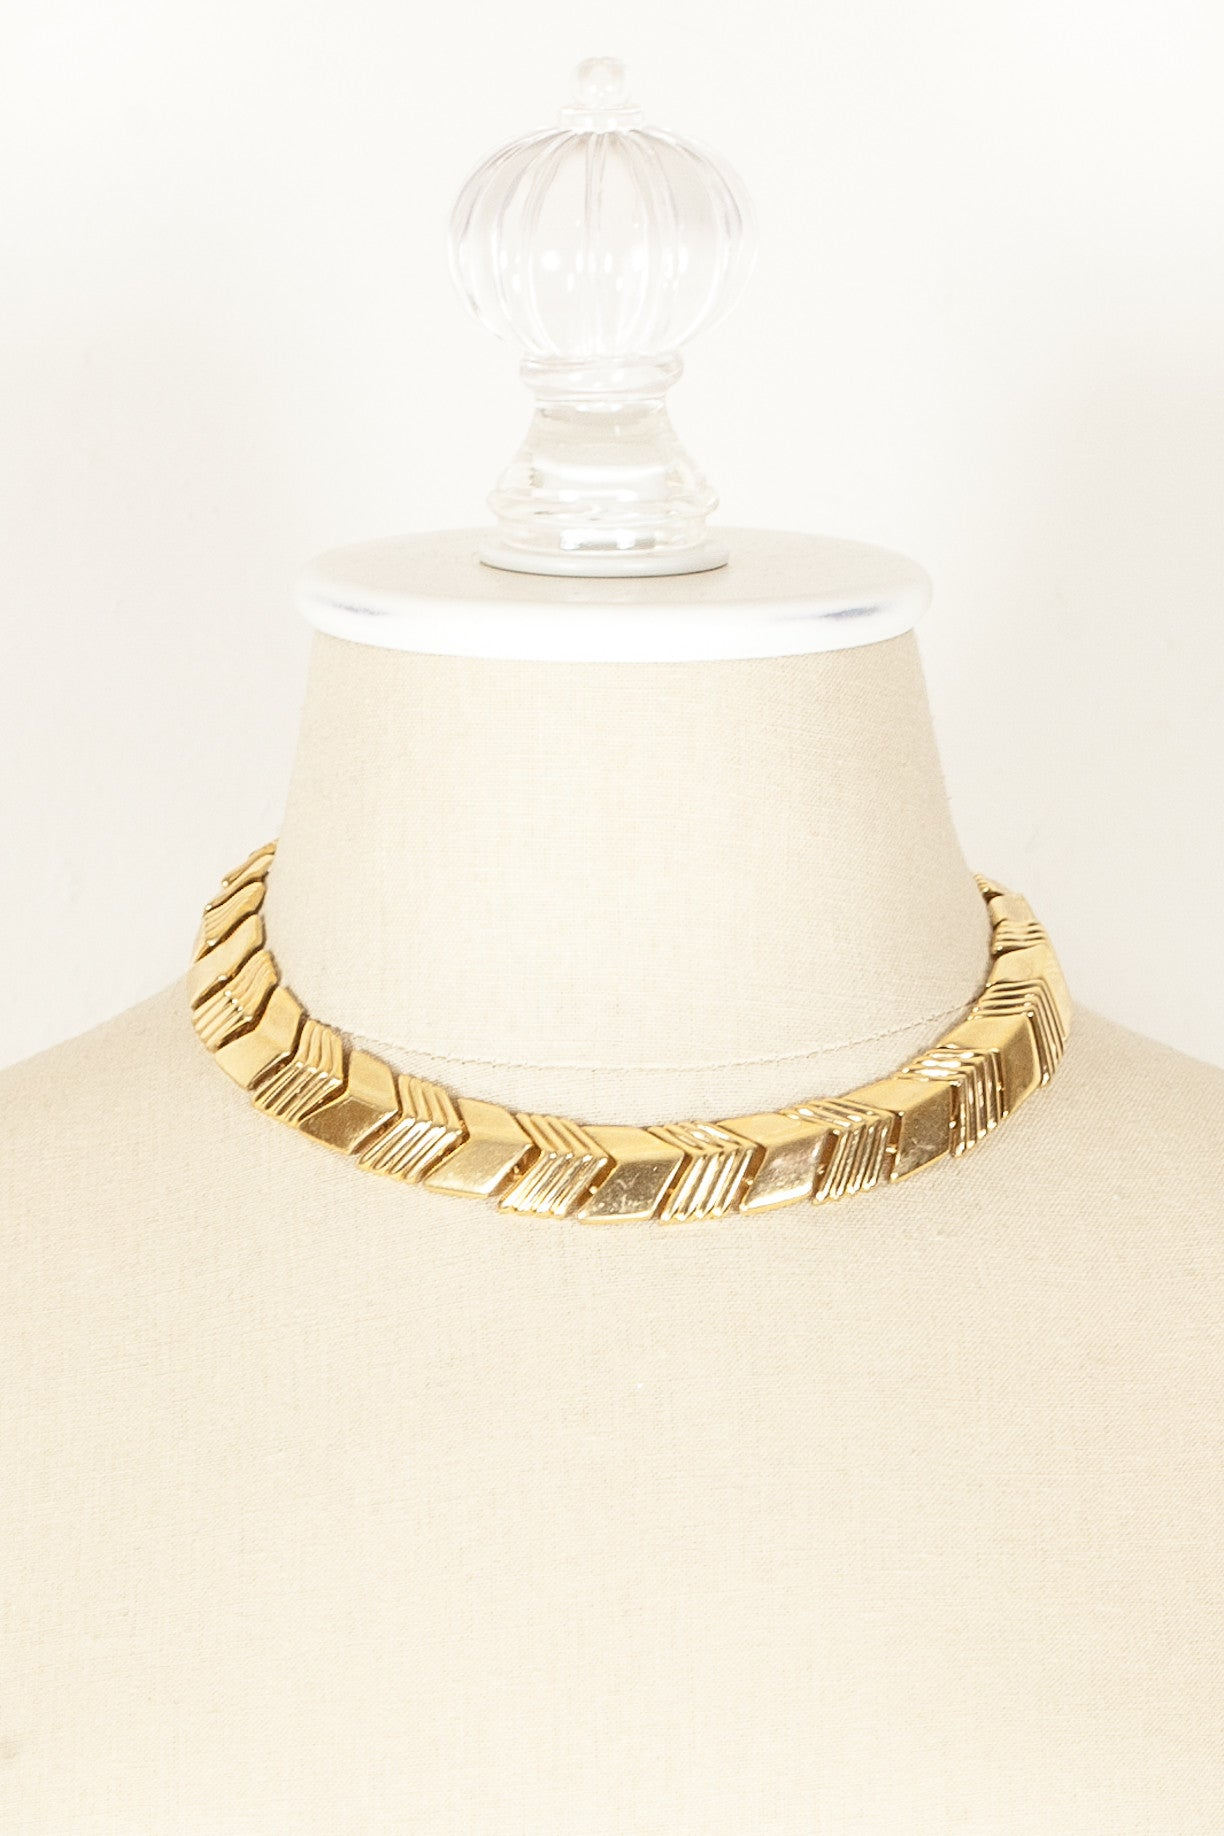 70's__Napier__Arrow Link Necklace